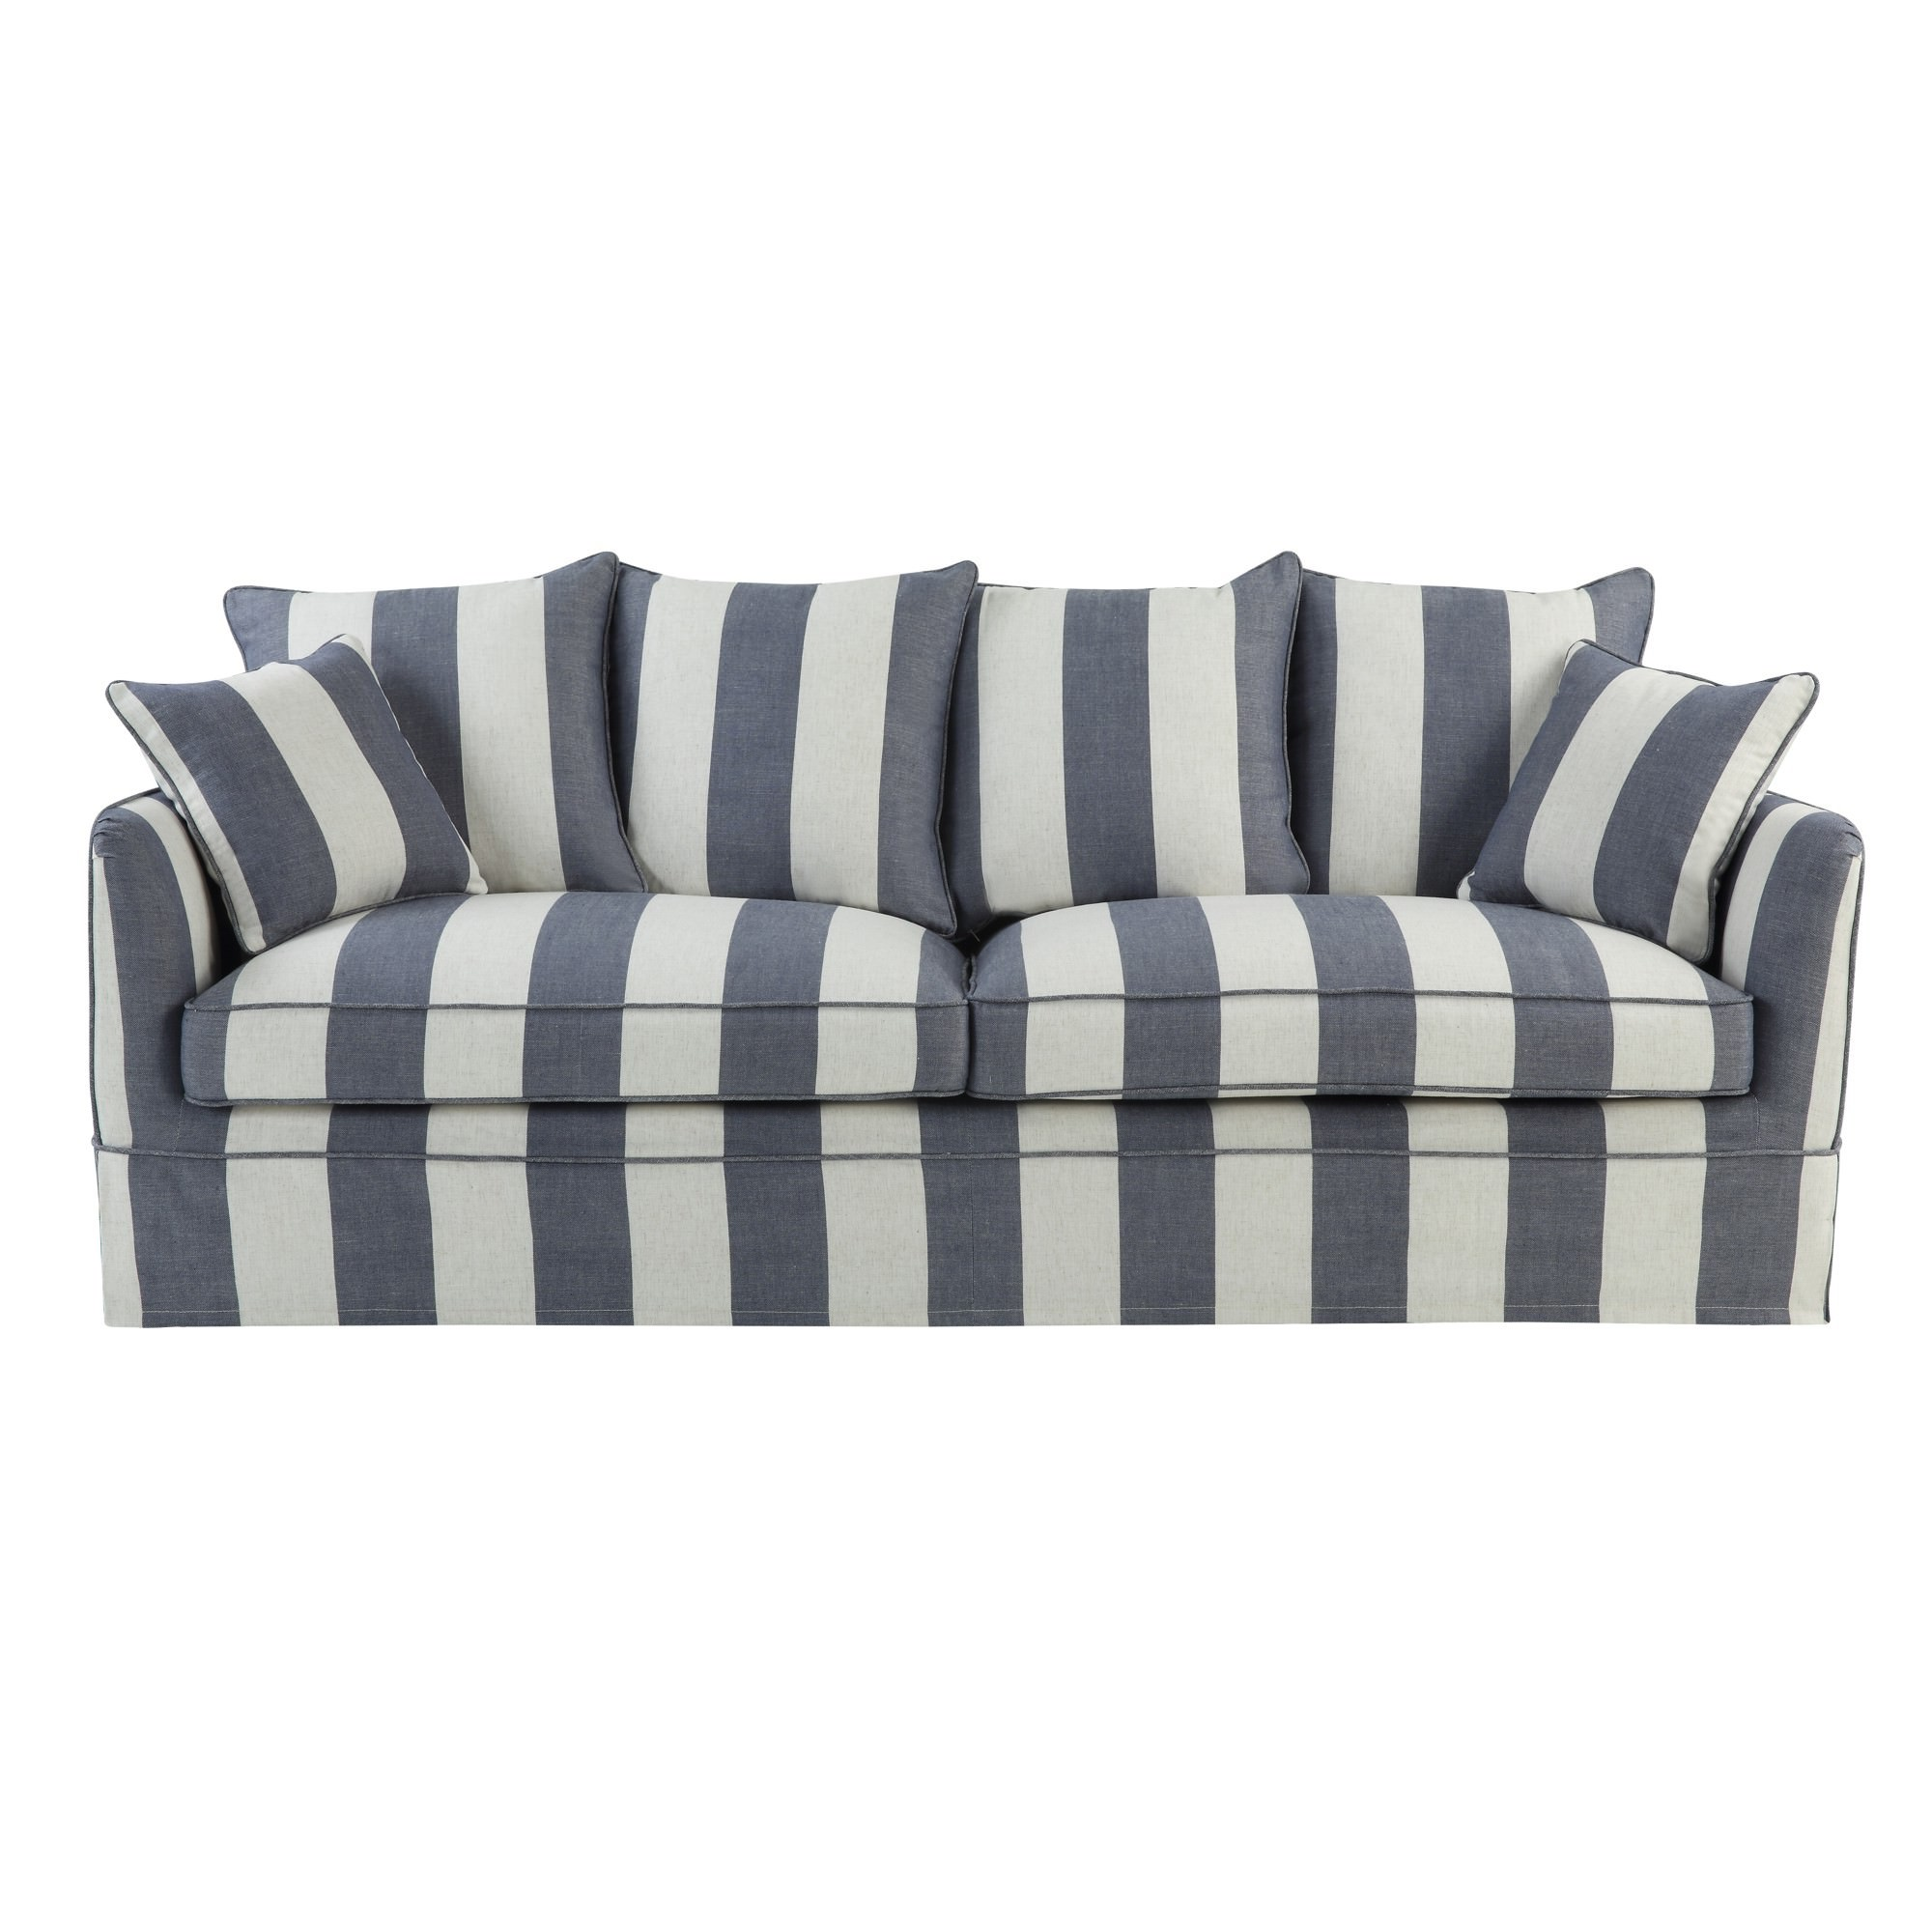 Noosa Fabric Sofa Cover (Cover Only), 3 Seater, Denim / Cream Stripe